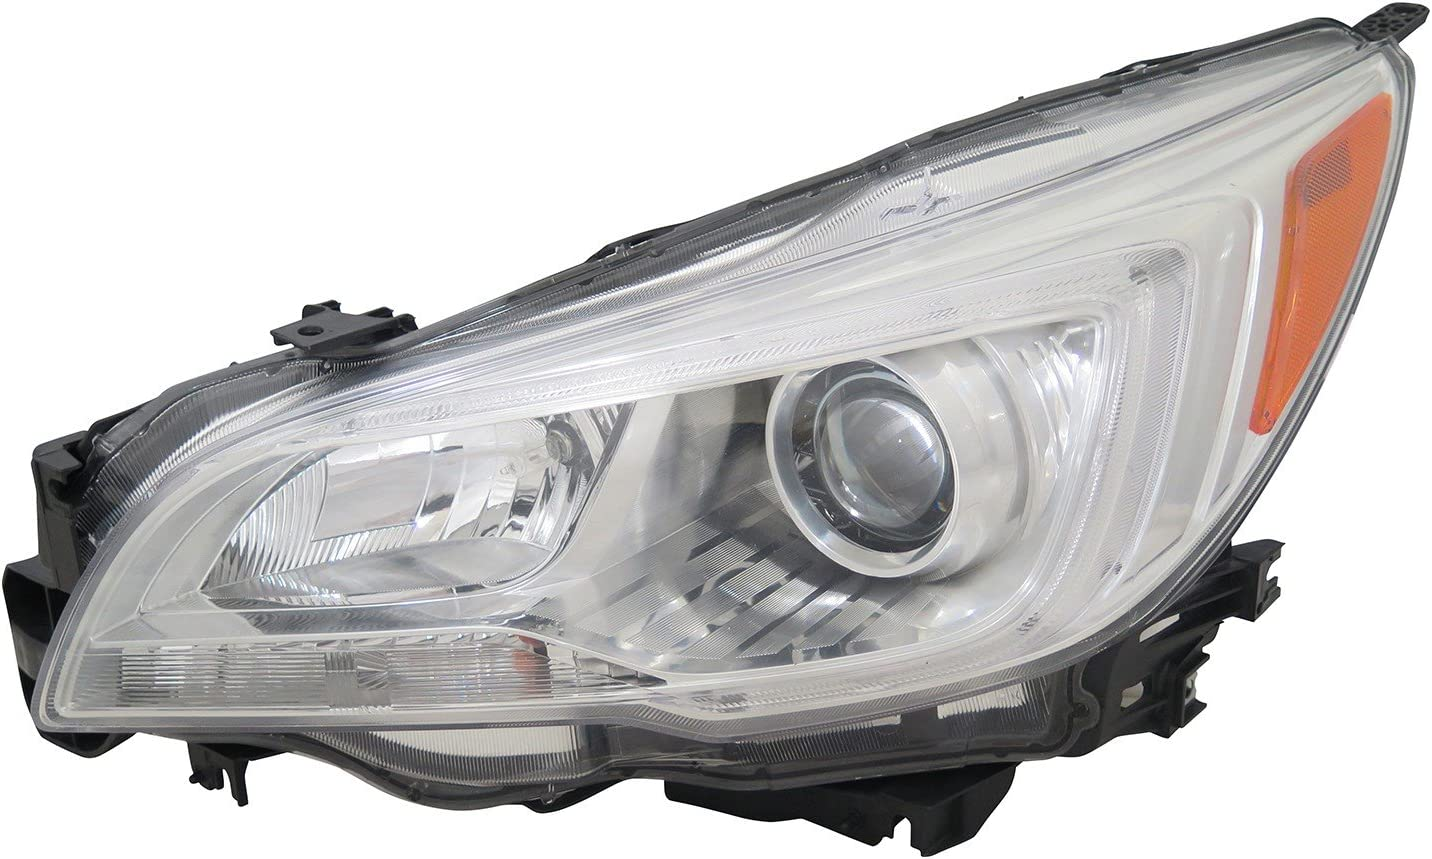 New Replacement Halogen Headlight Assembly RH FOR 2008-2010 DODGE CHALLENGER